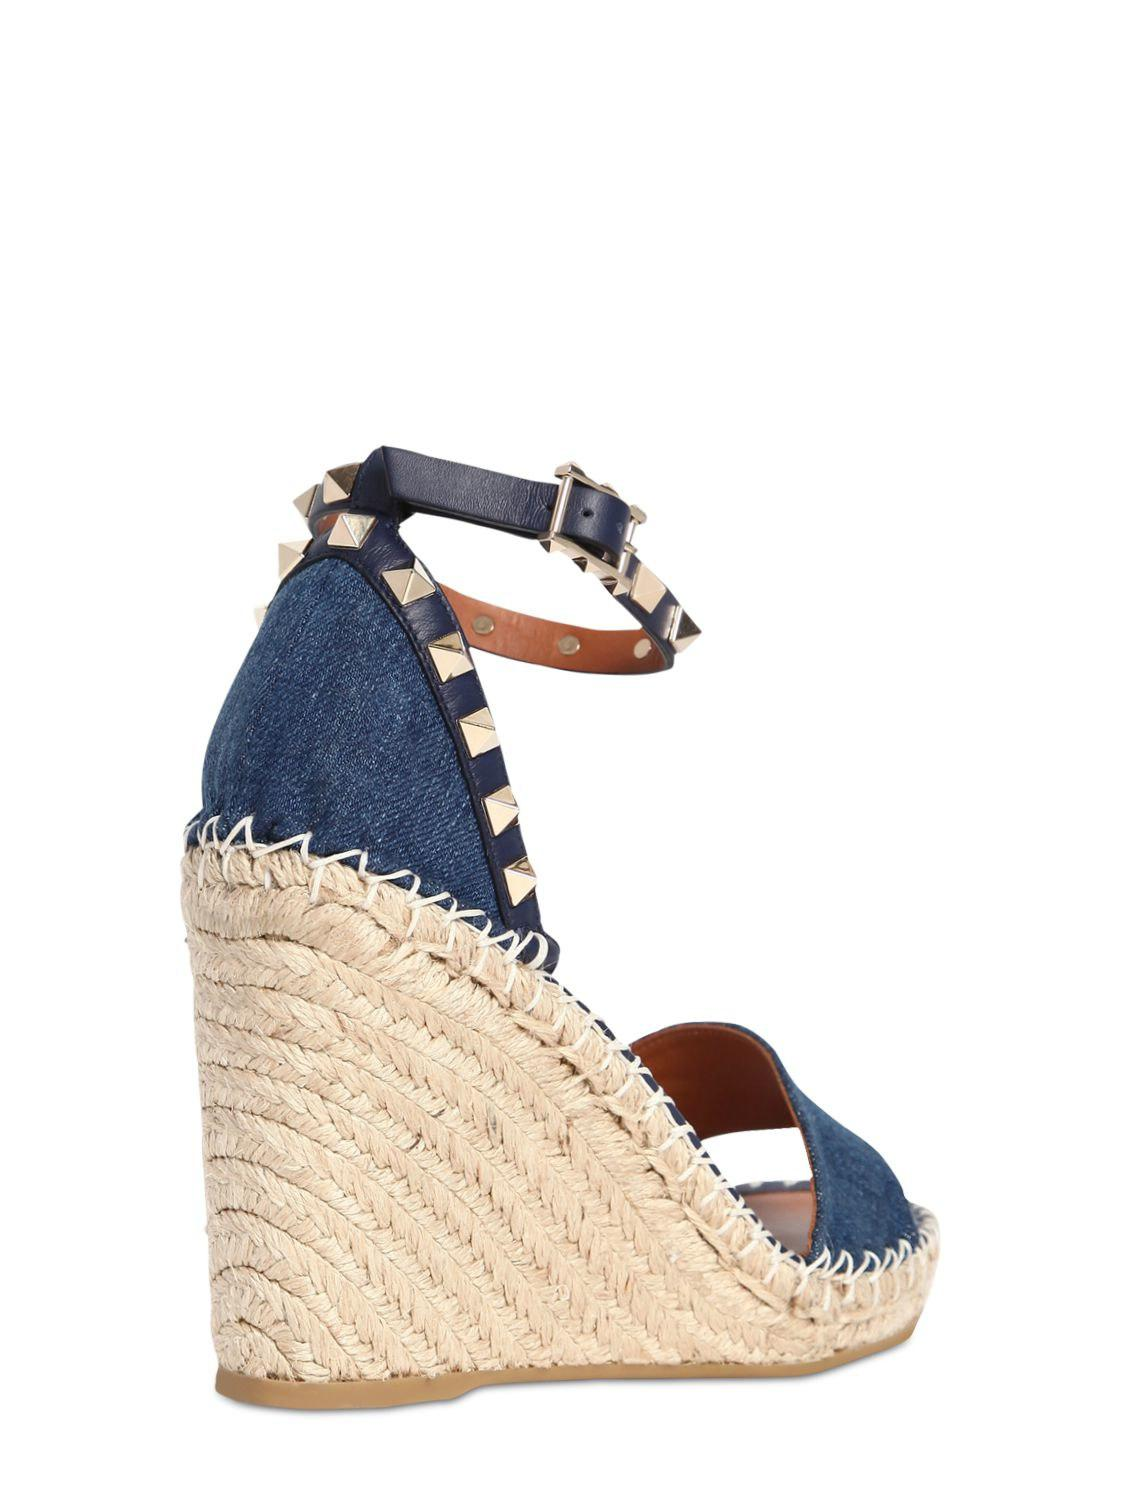 0e6da26c4e9 Valentino - Blue 105mm Rockstud Double Denim Wedges - Lyst. View fullscreen